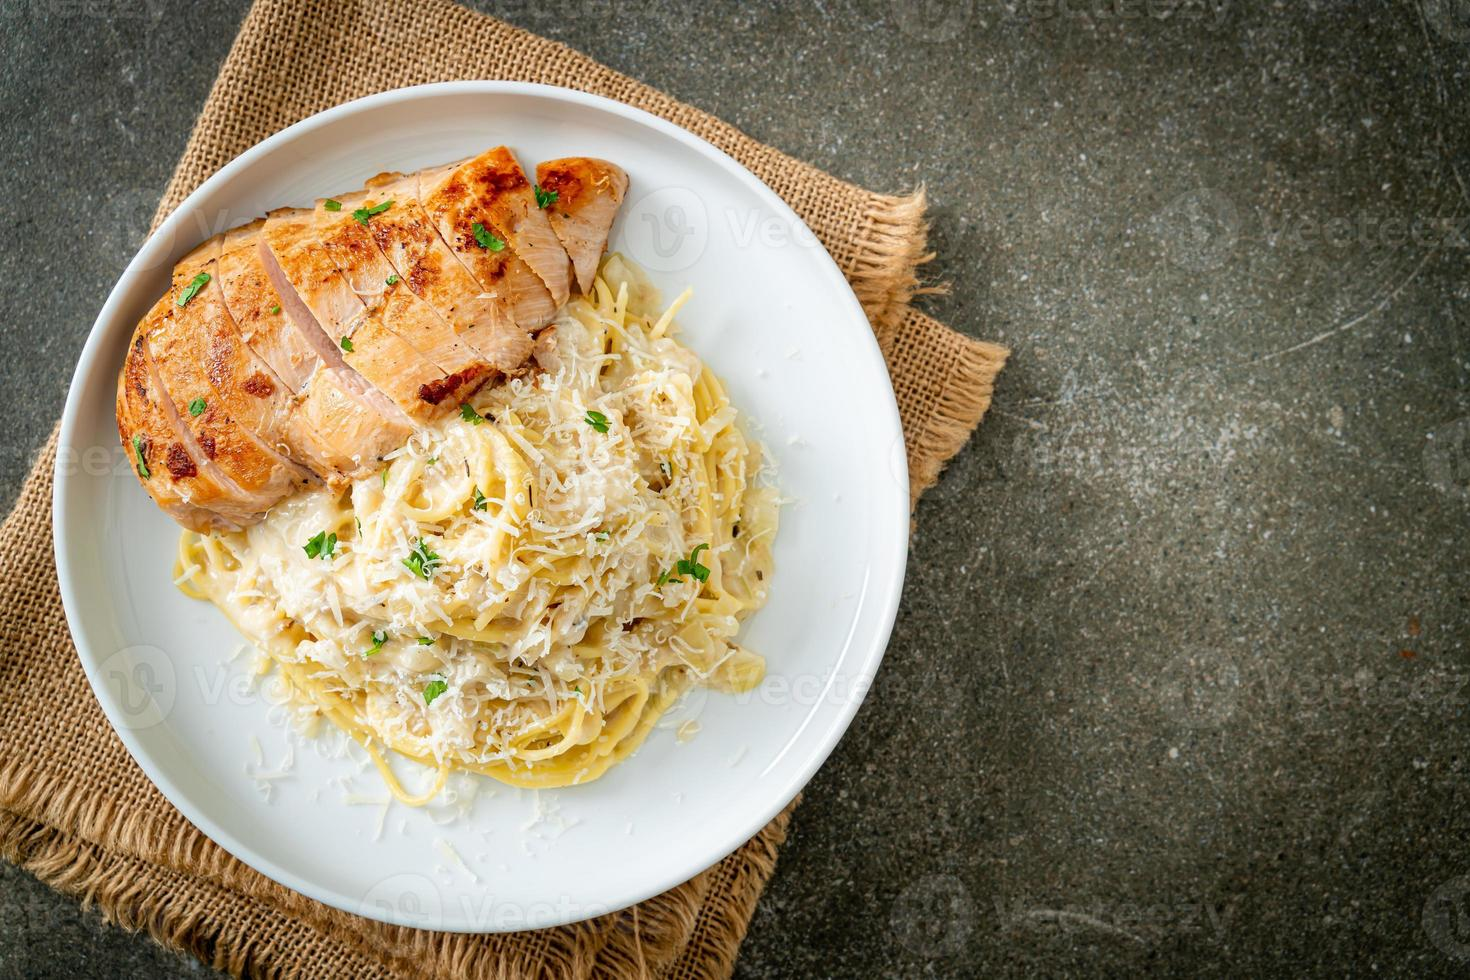 Homemade spaghetti white creamy sauce with grilled chicken photo